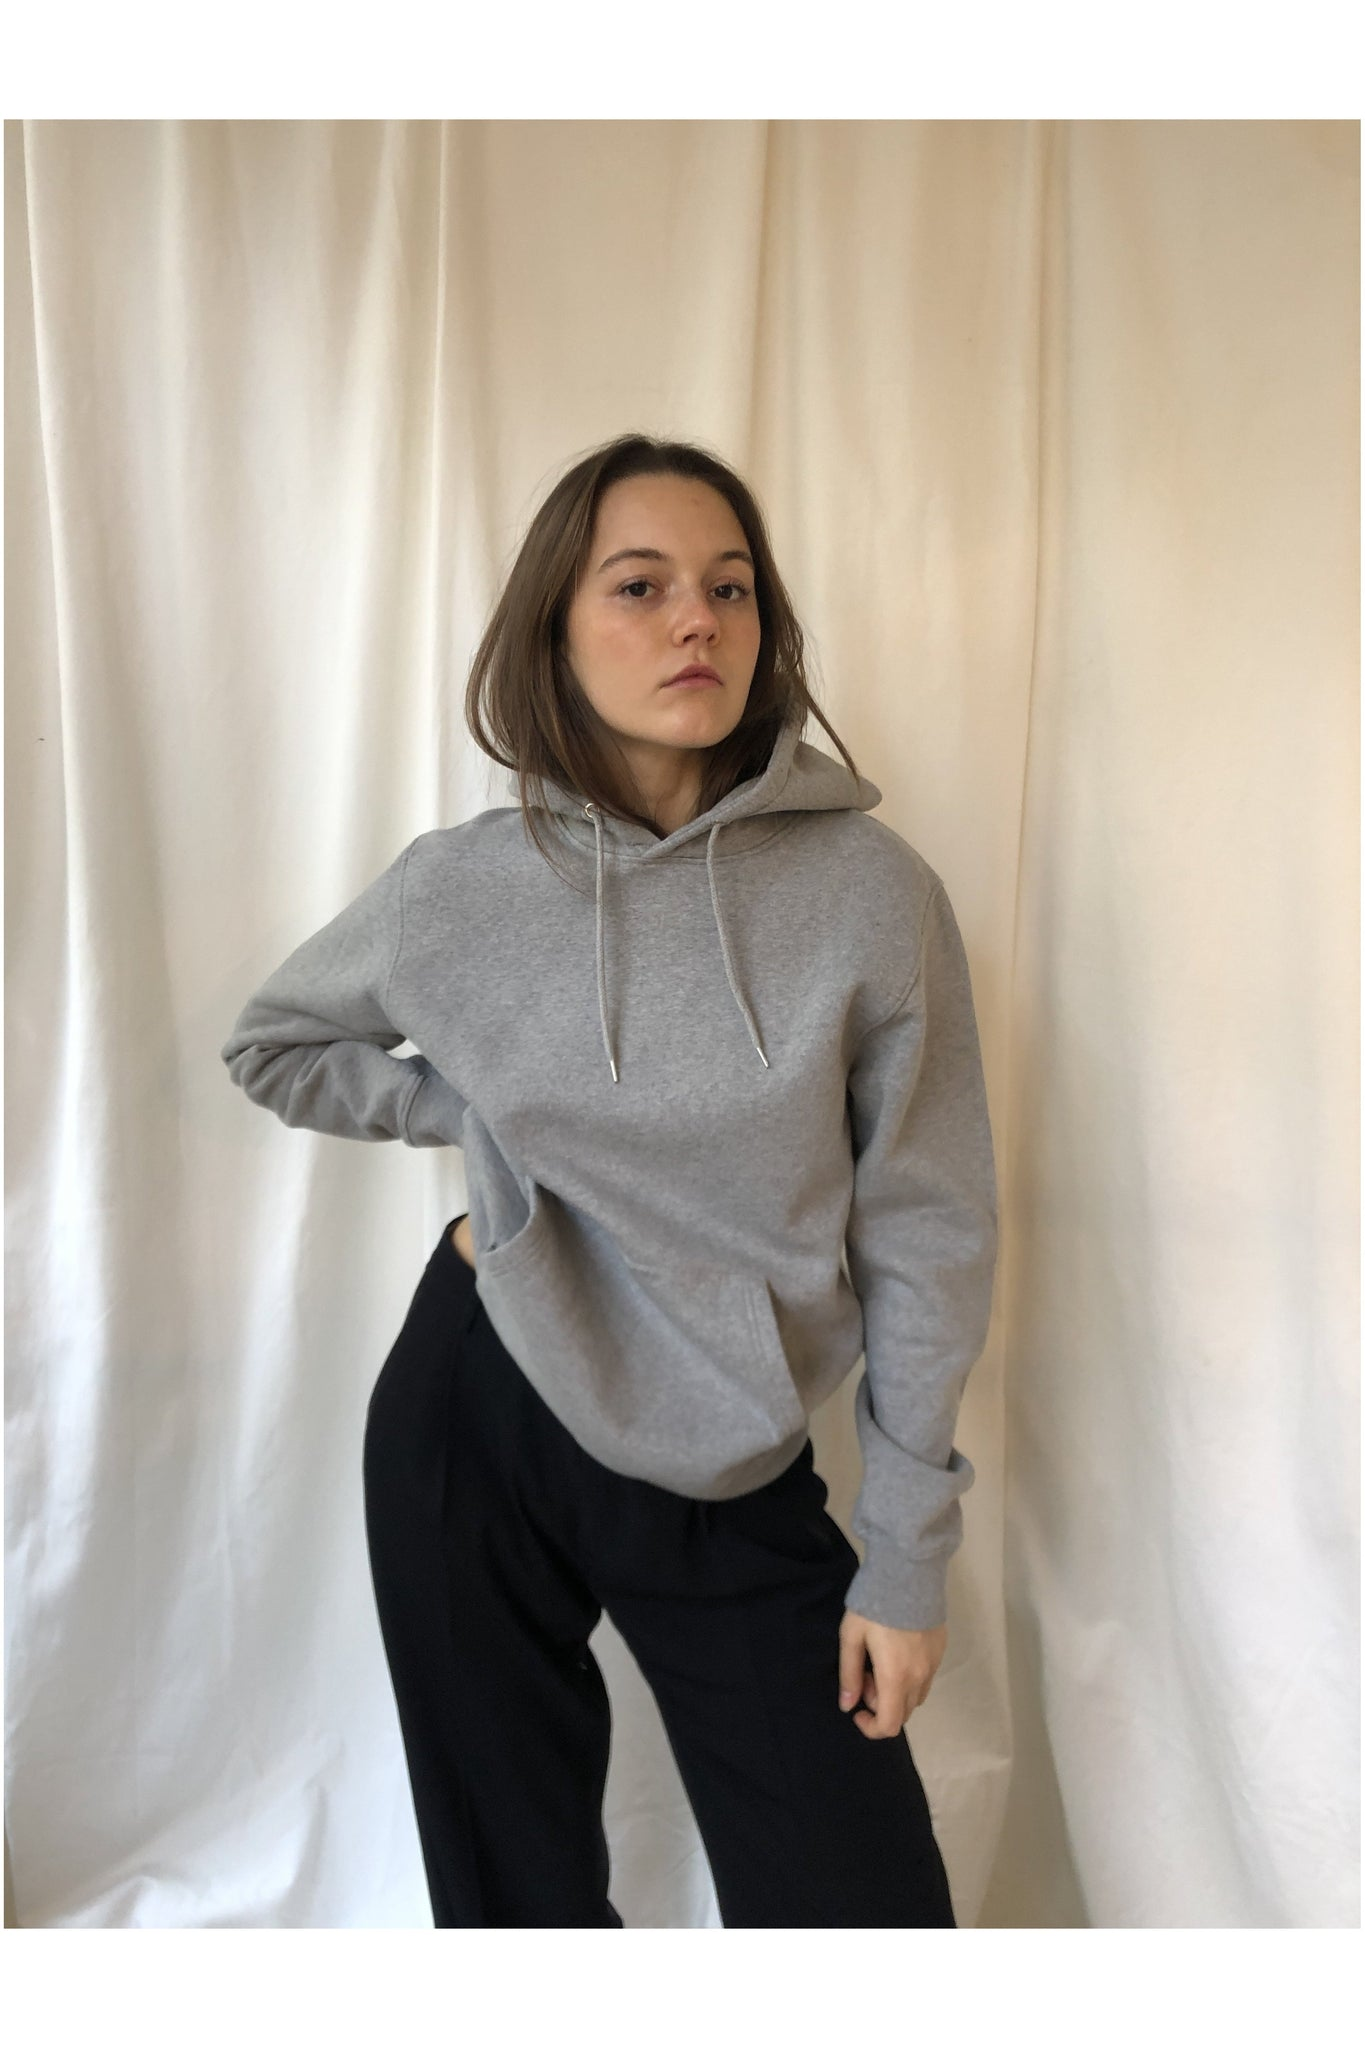 UNISEX ORGANIC COTTON HOODIE IN CLASSIC GREY - BEYOND STUDIOS